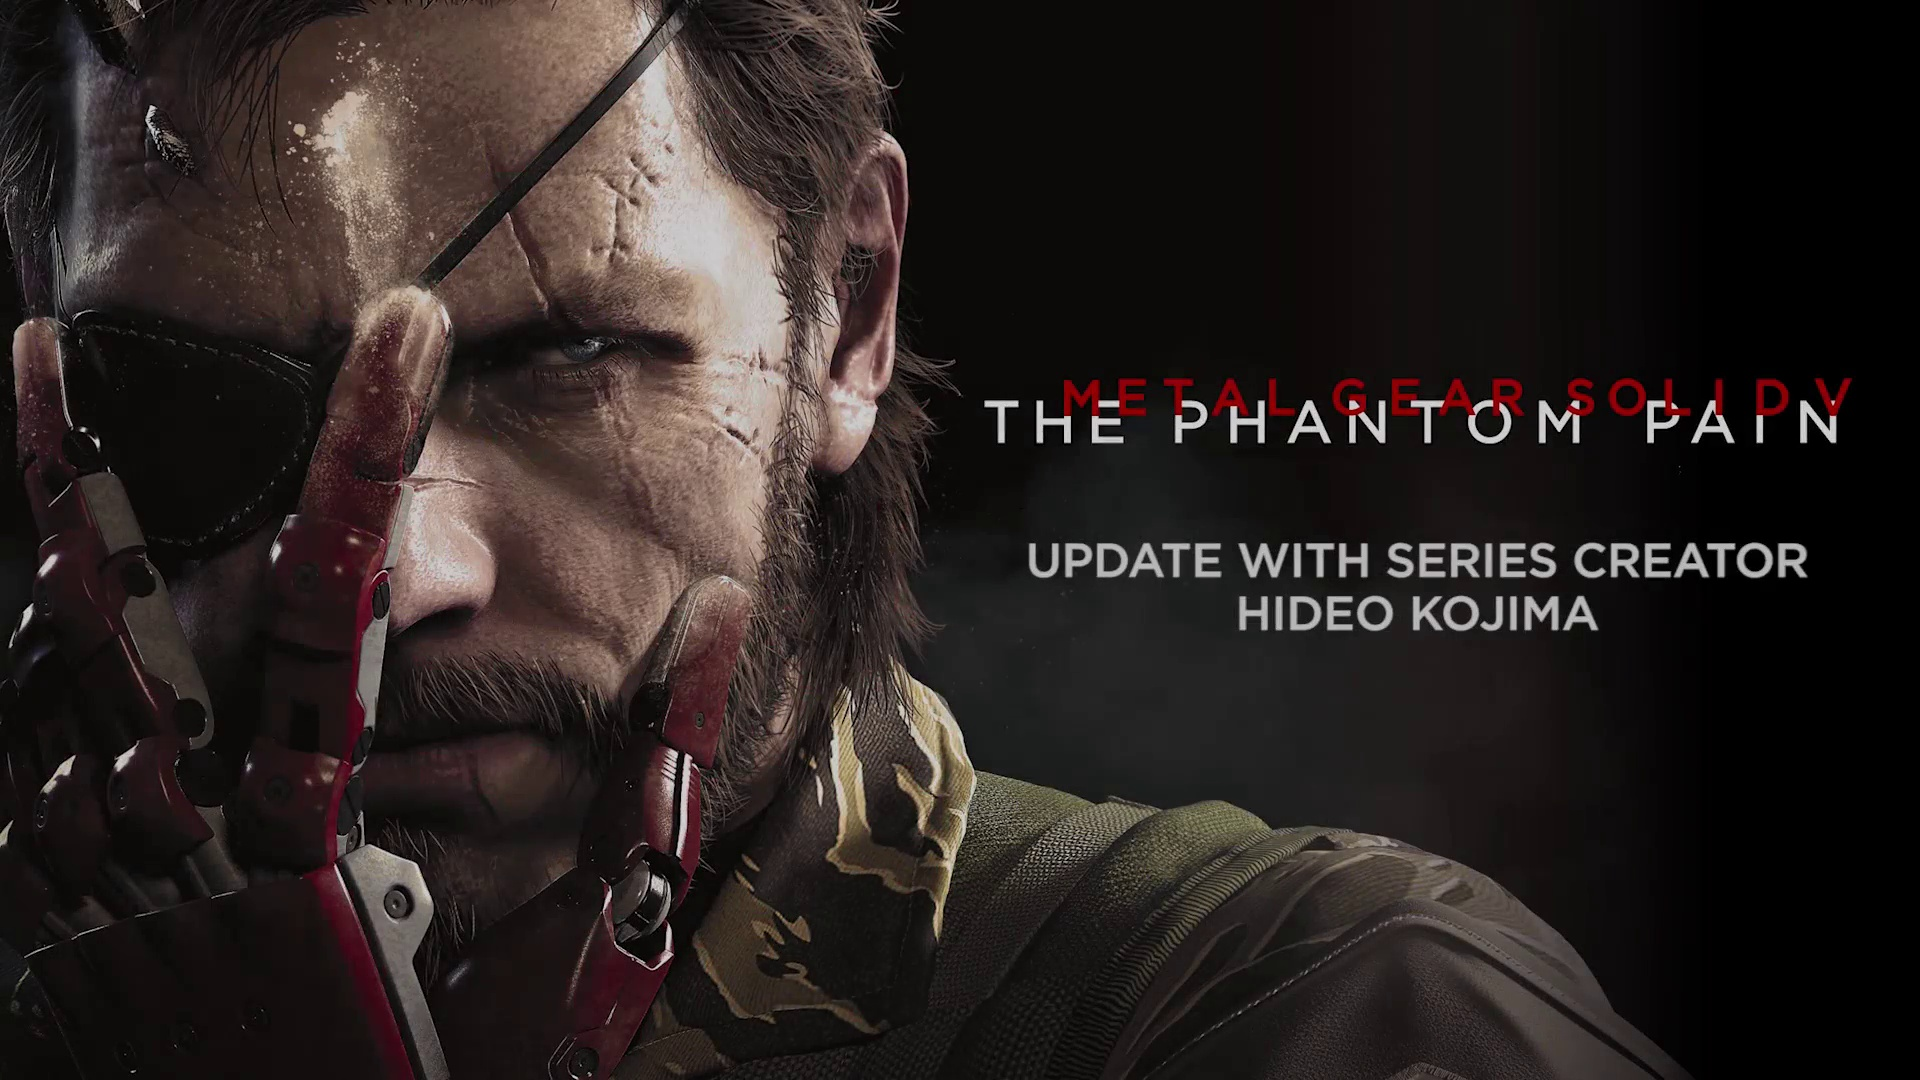 دانلود سیو بازی Metal Gear Solid 5: The Phantom Pain